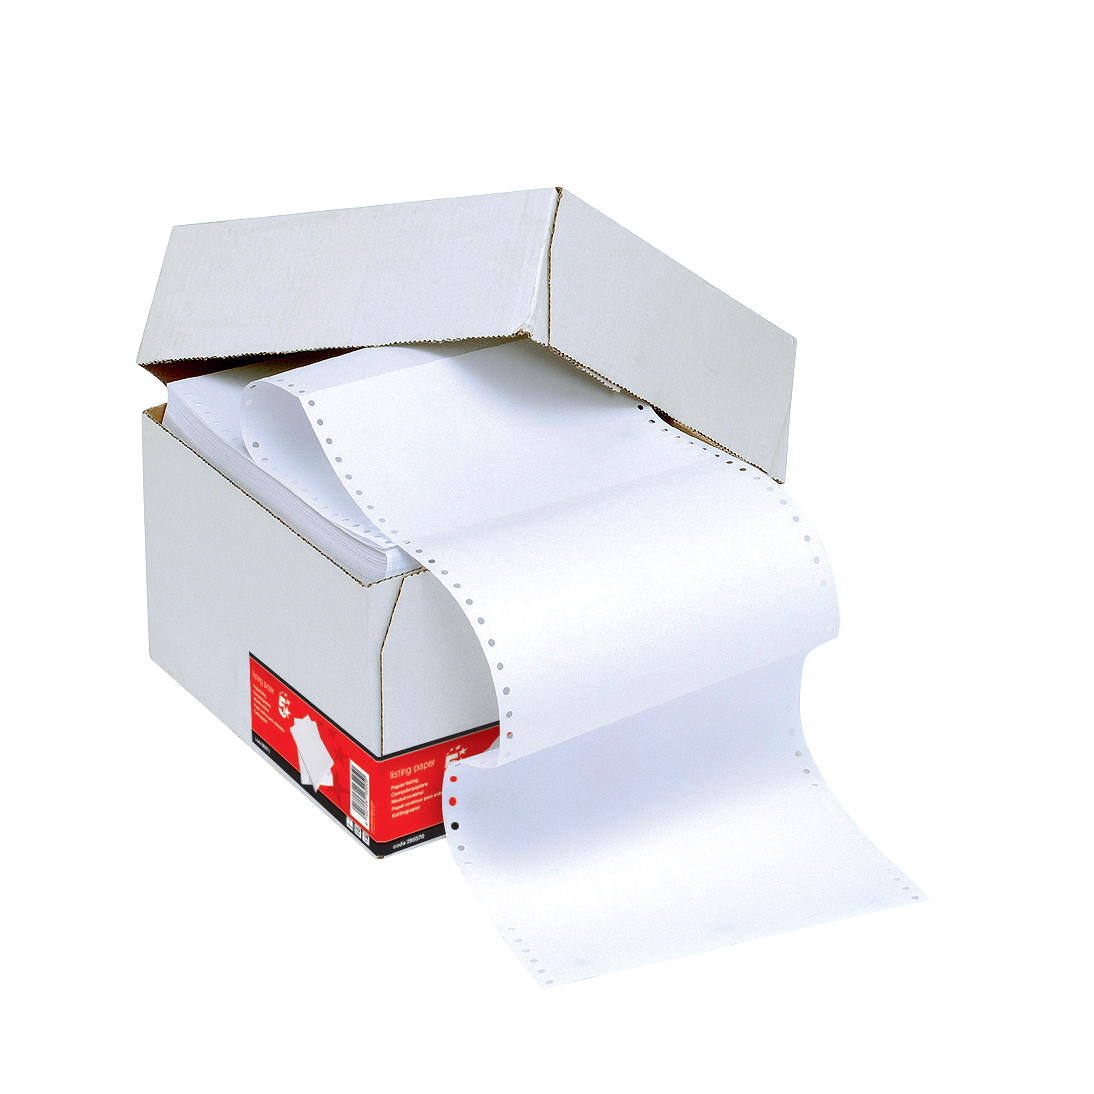 5 Star Office Listing Paper 1-Part 60gsm 11inchx368mm Ruled [2000 Sheets]